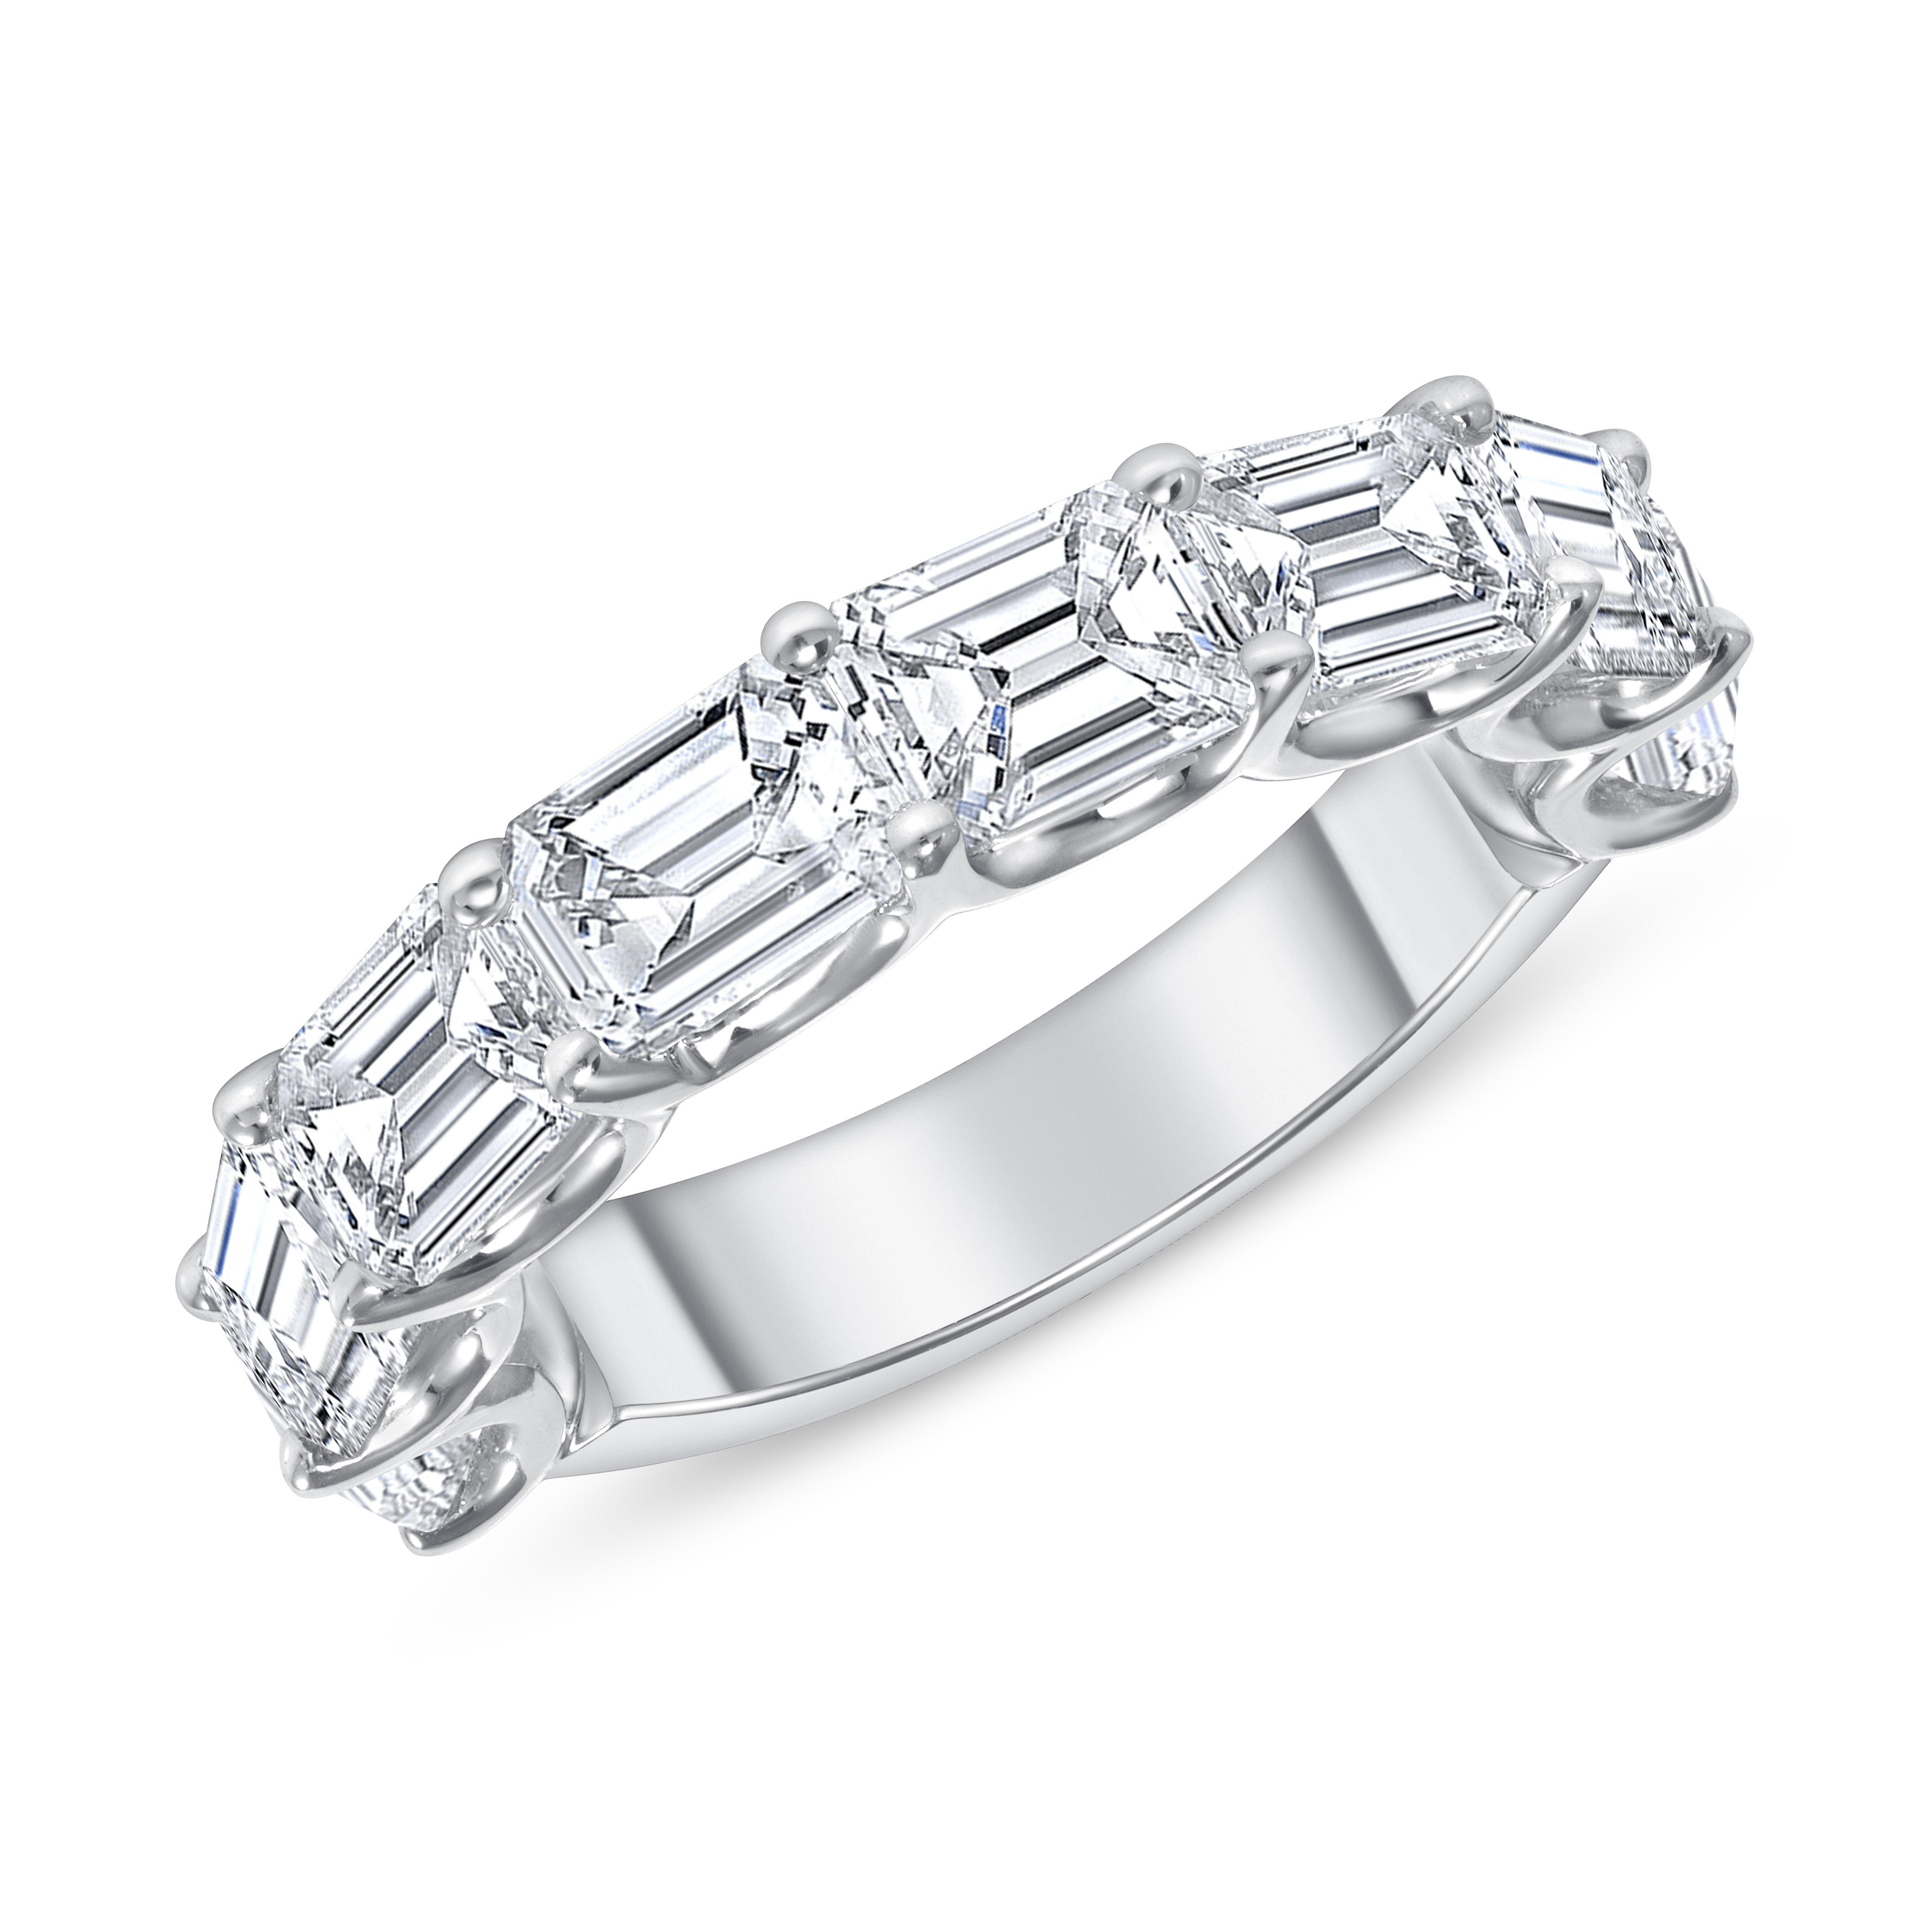 Emerald cut diamond East west set on 18k white gold Halfway Eternity Band